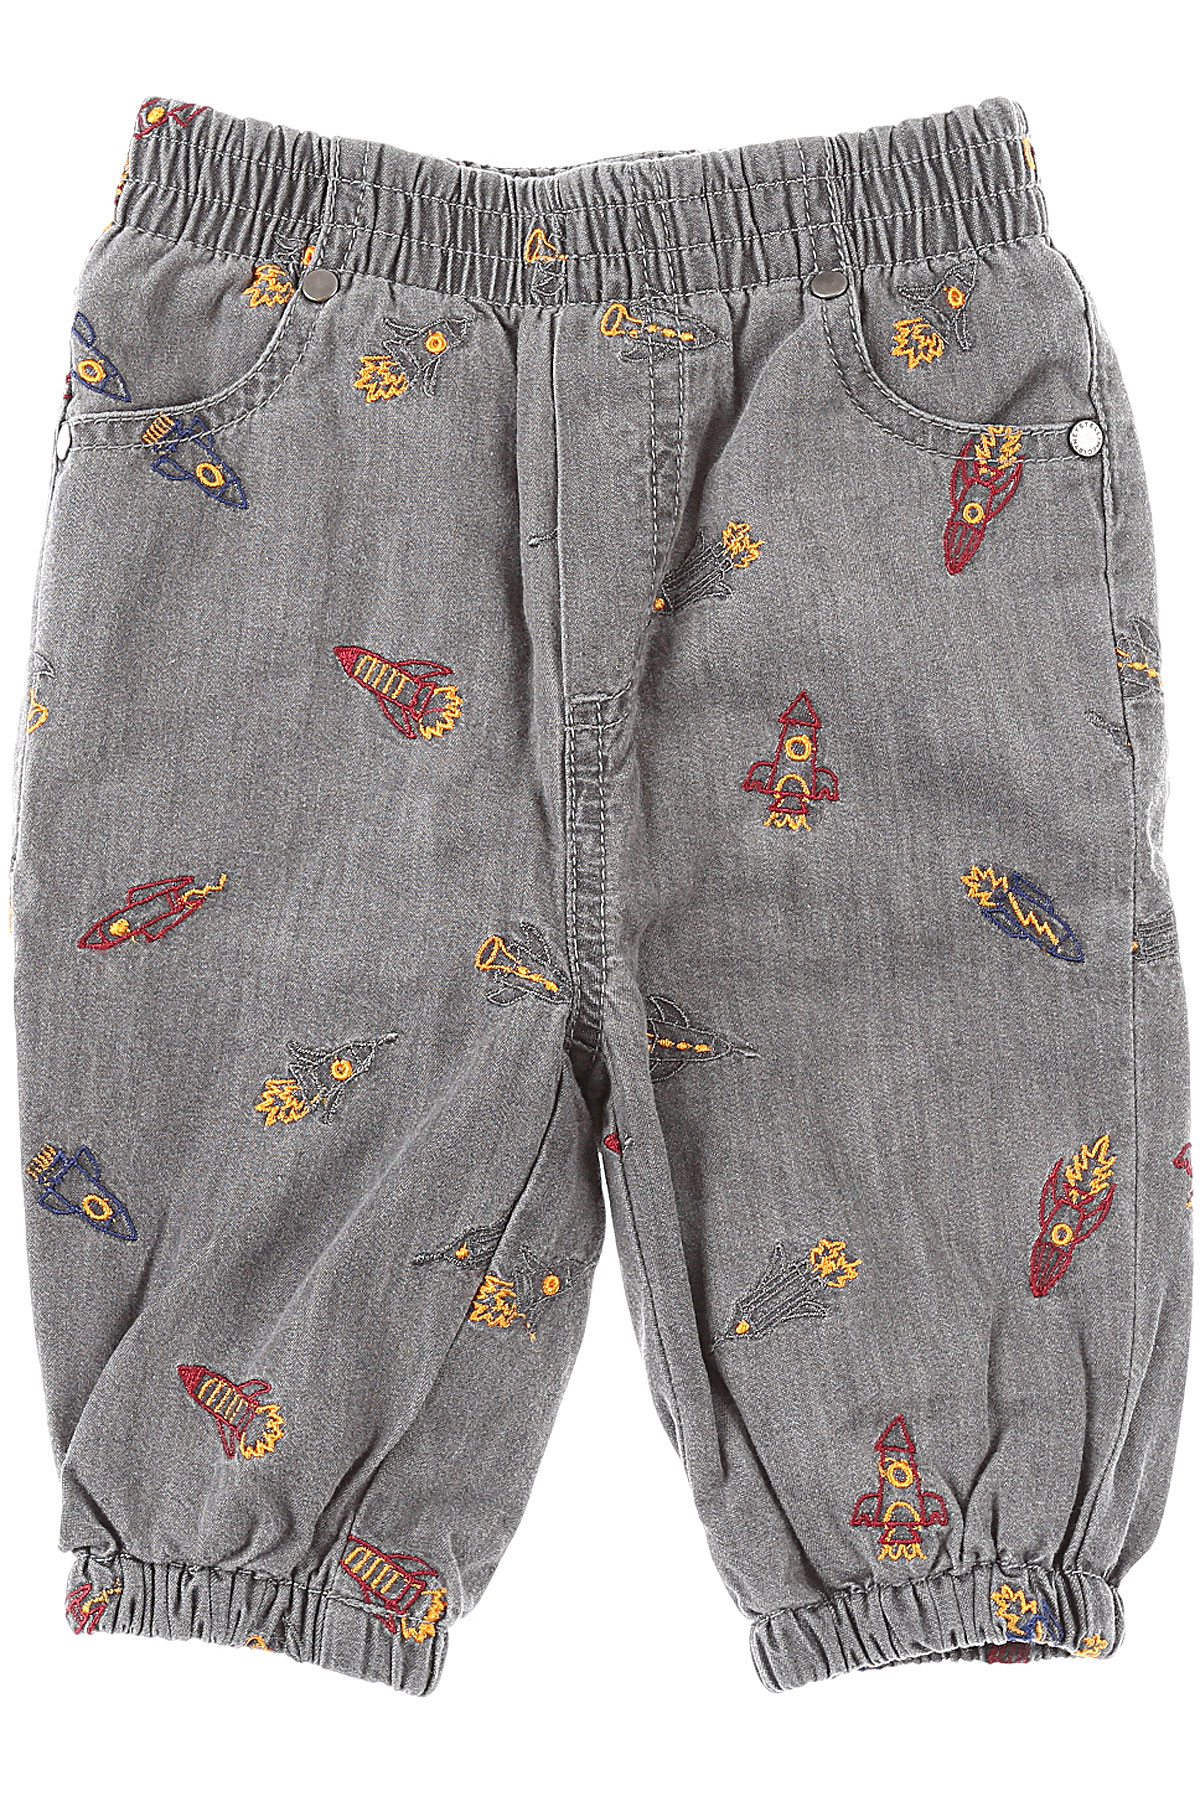 Stella McCartney Baby Pants for Boys On Sale, Grey, Cotton, 2019, 18 M 9 M